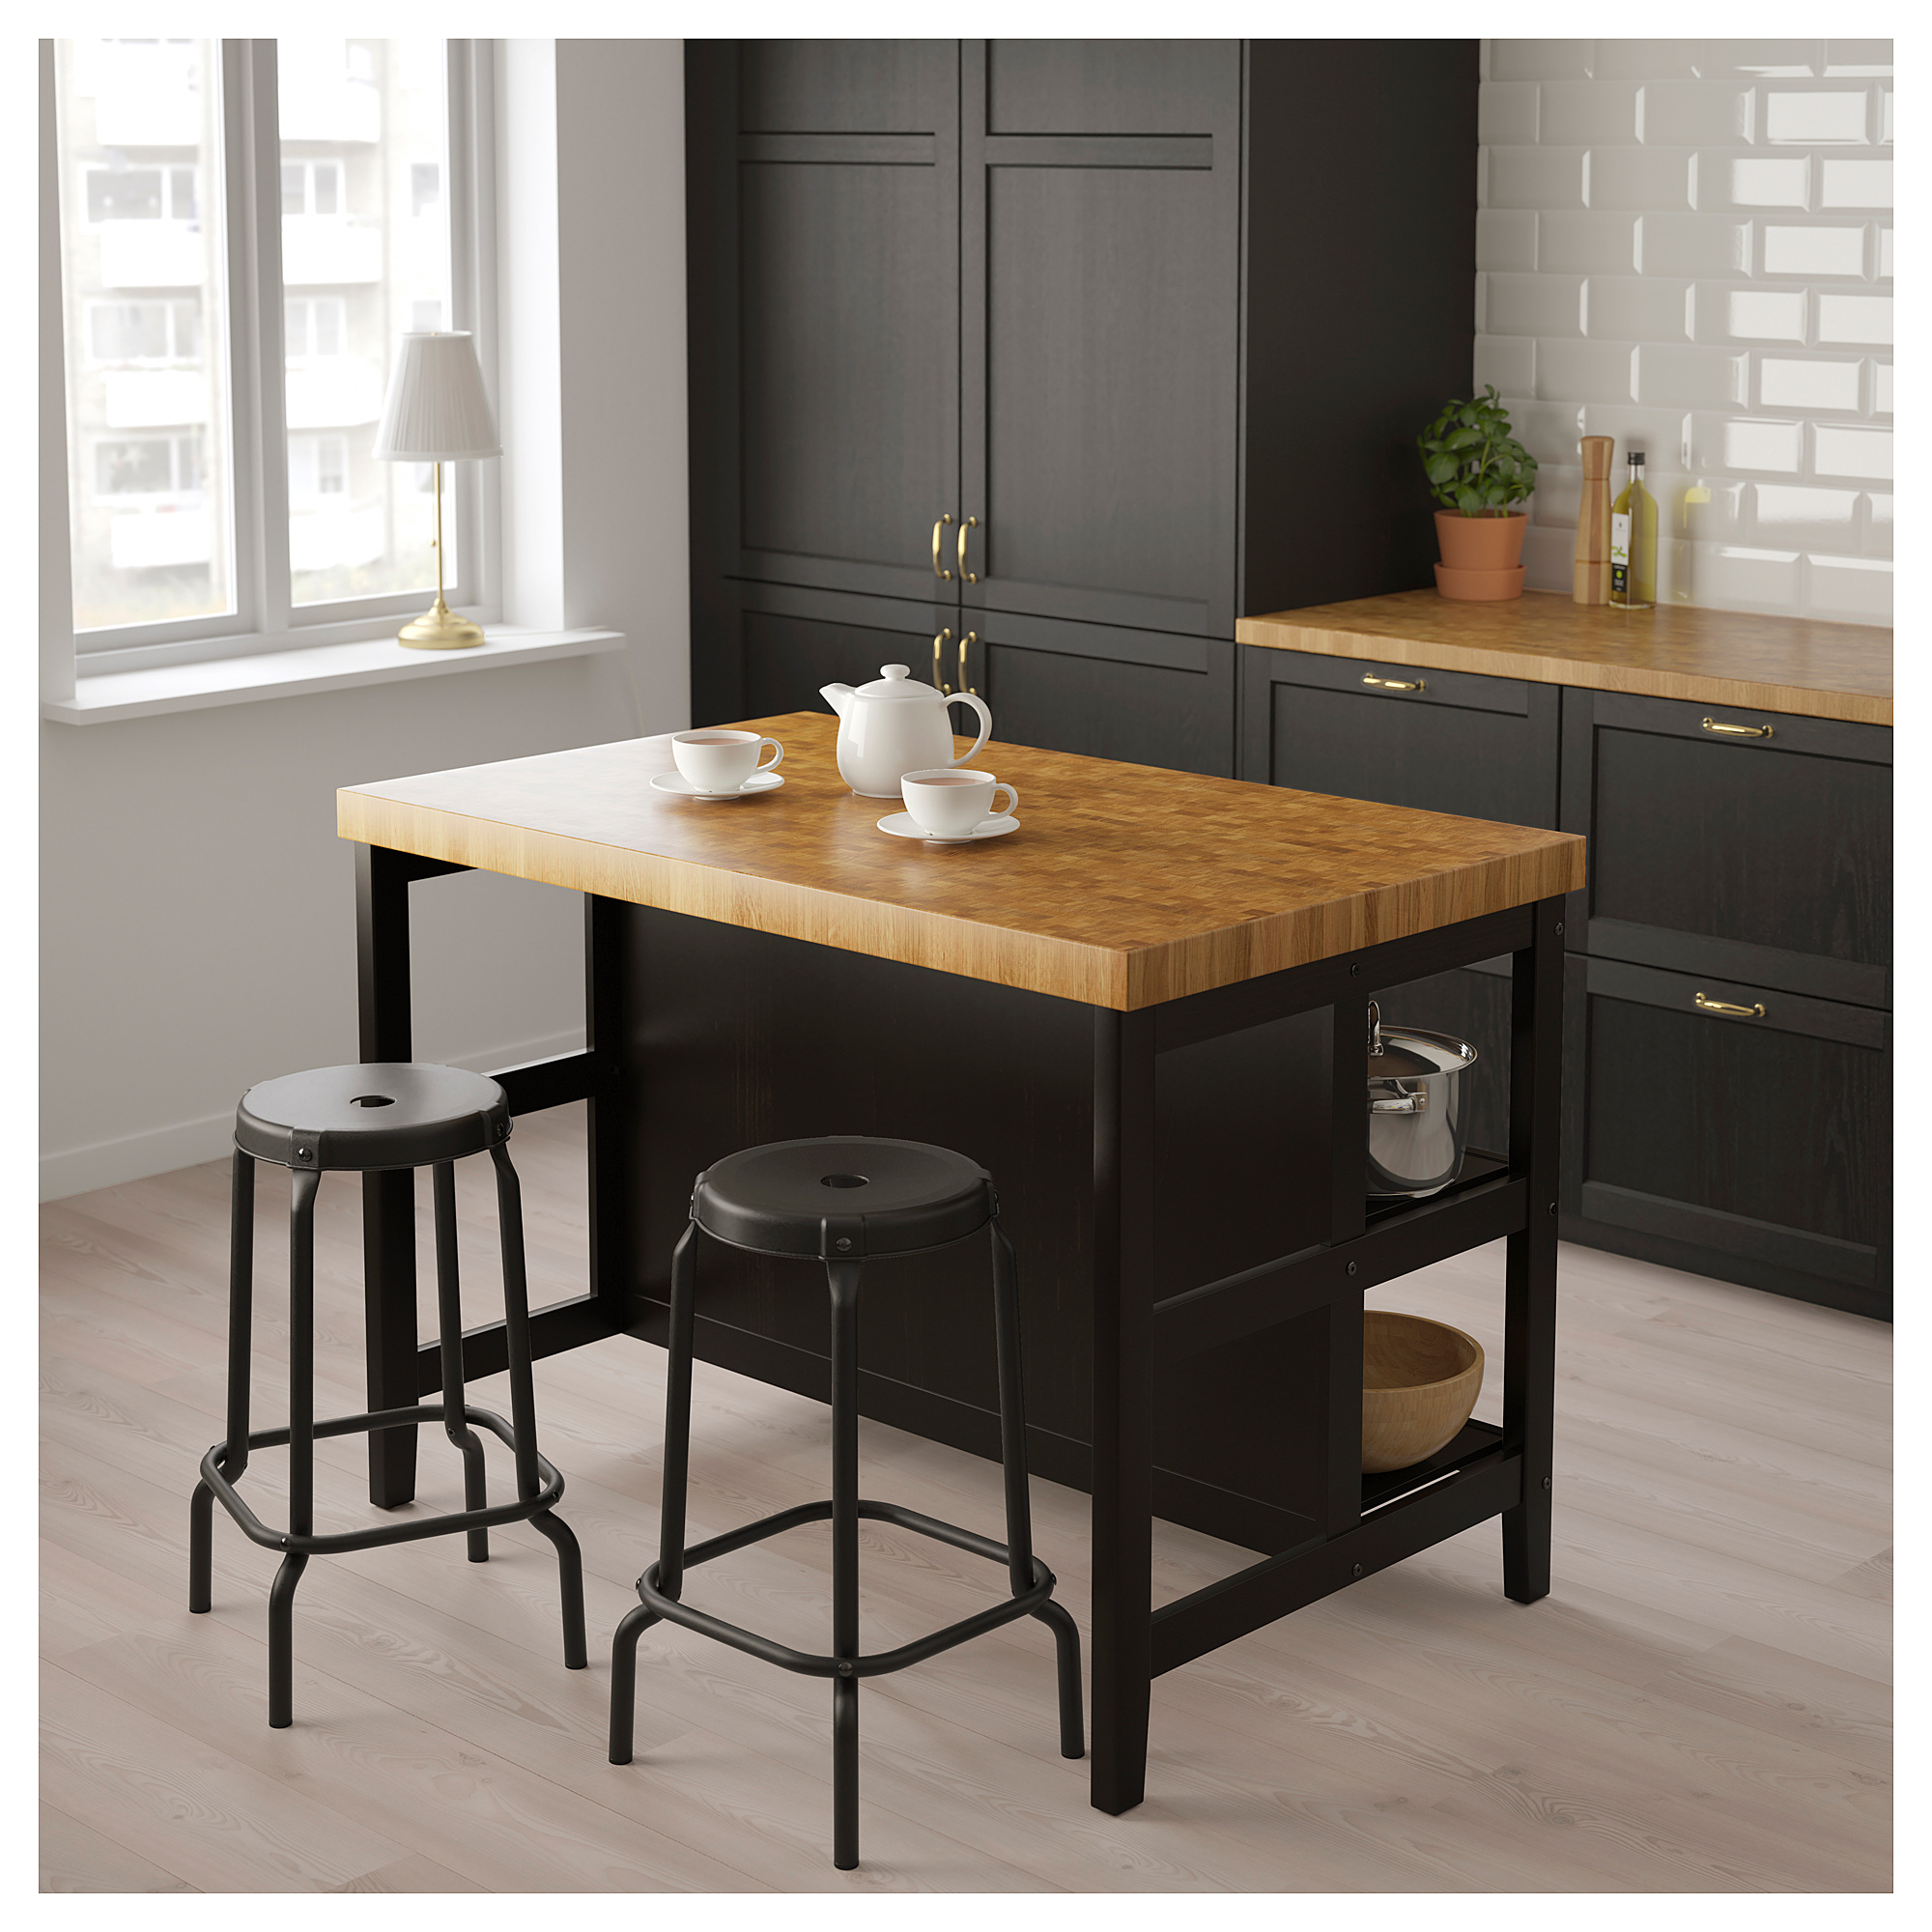 ikea islands kitchen 50 ikea kitchen islands you ll love in 2020 visual hunt 2746